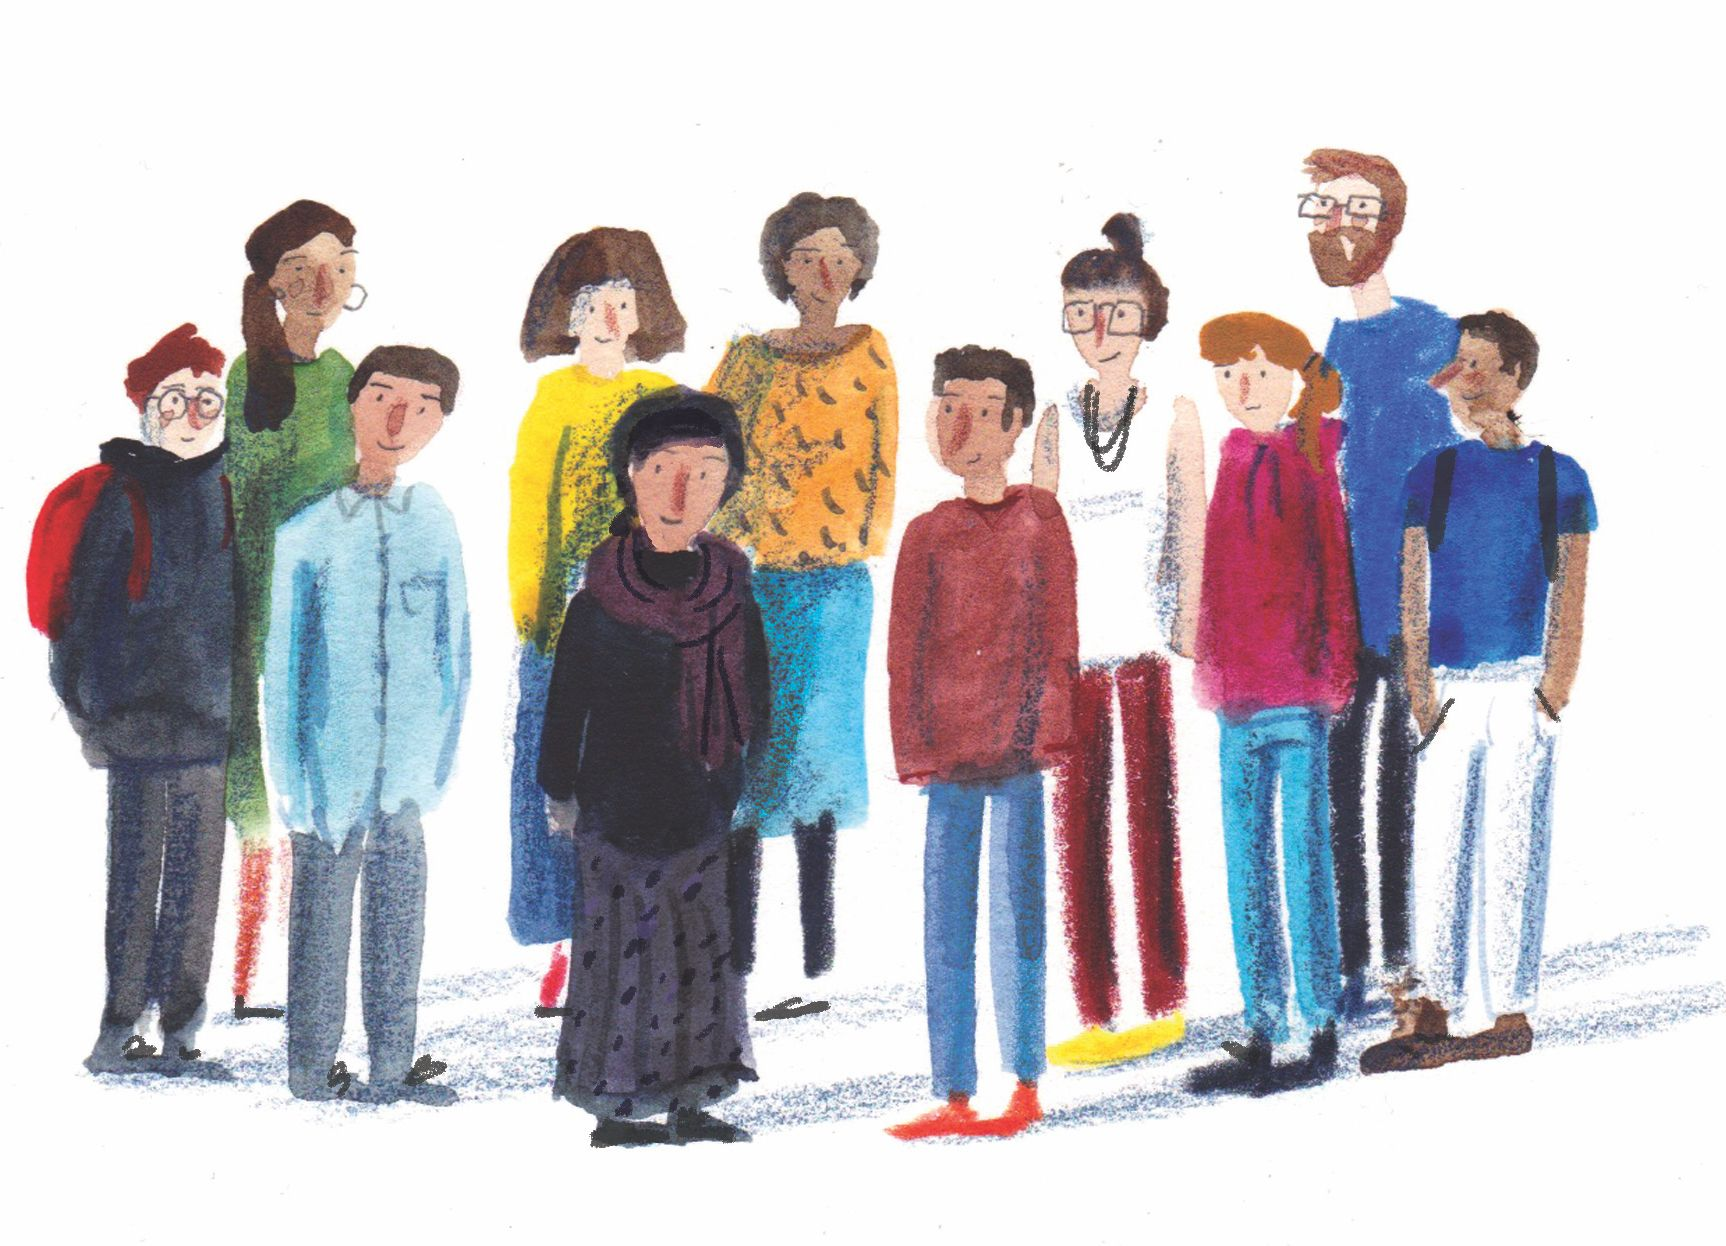 A group of people in modern dress - of various ages, genders, ethnicities - stand together. Illustrated in a rough style with pencil and watercolour